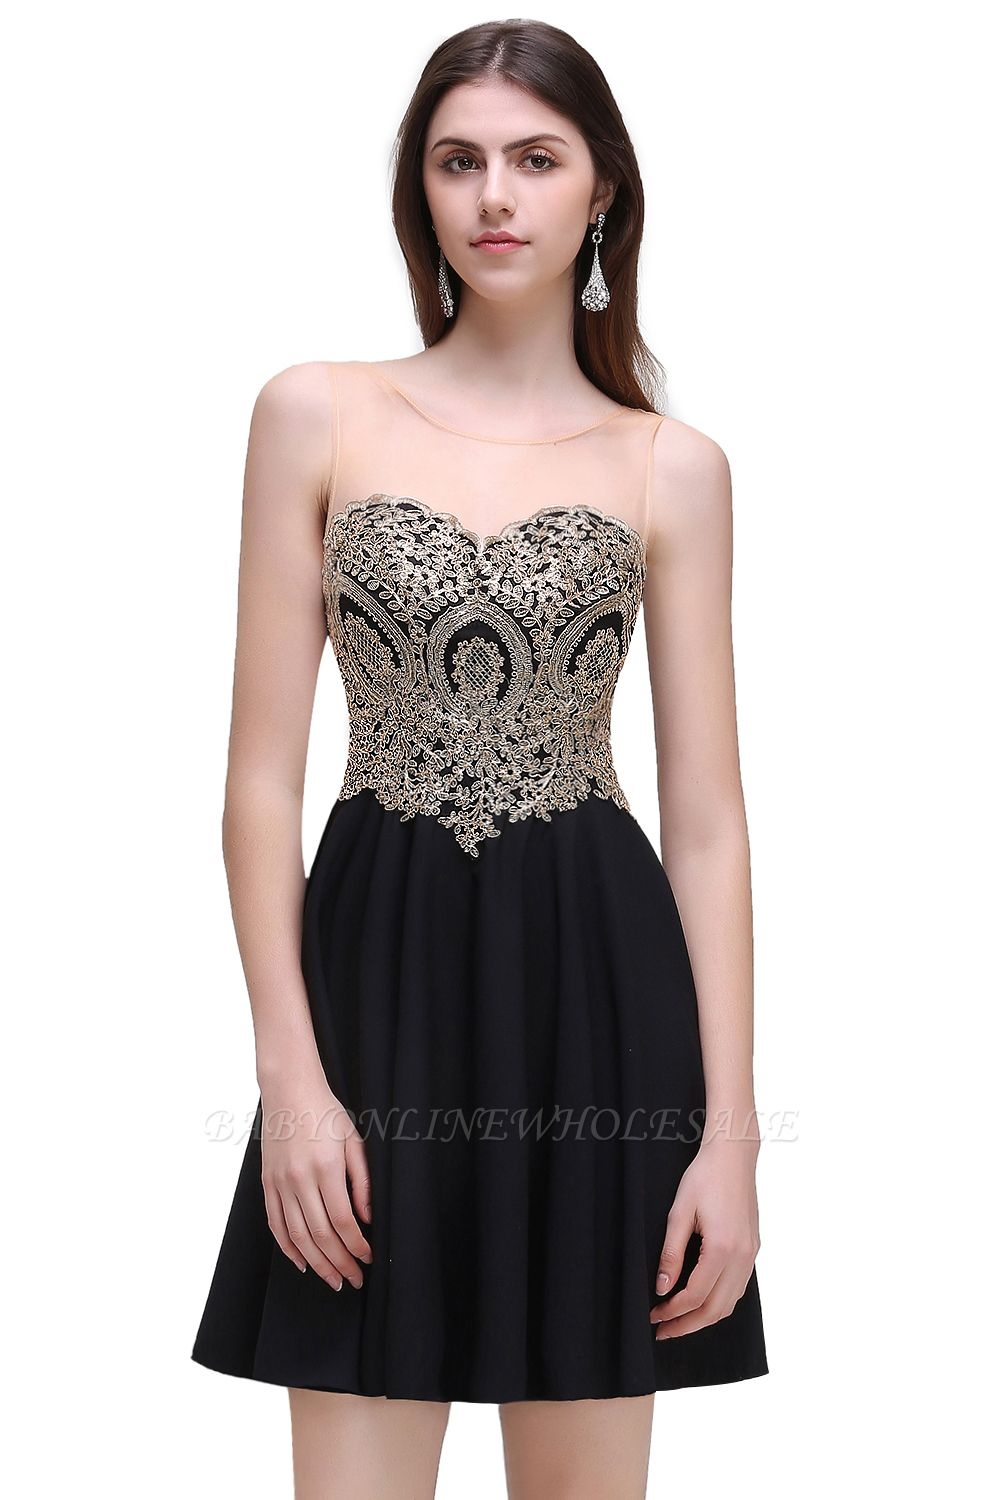 CAITLIN | A-line Short Chiffon Black Homecoming Dresses with Appliques